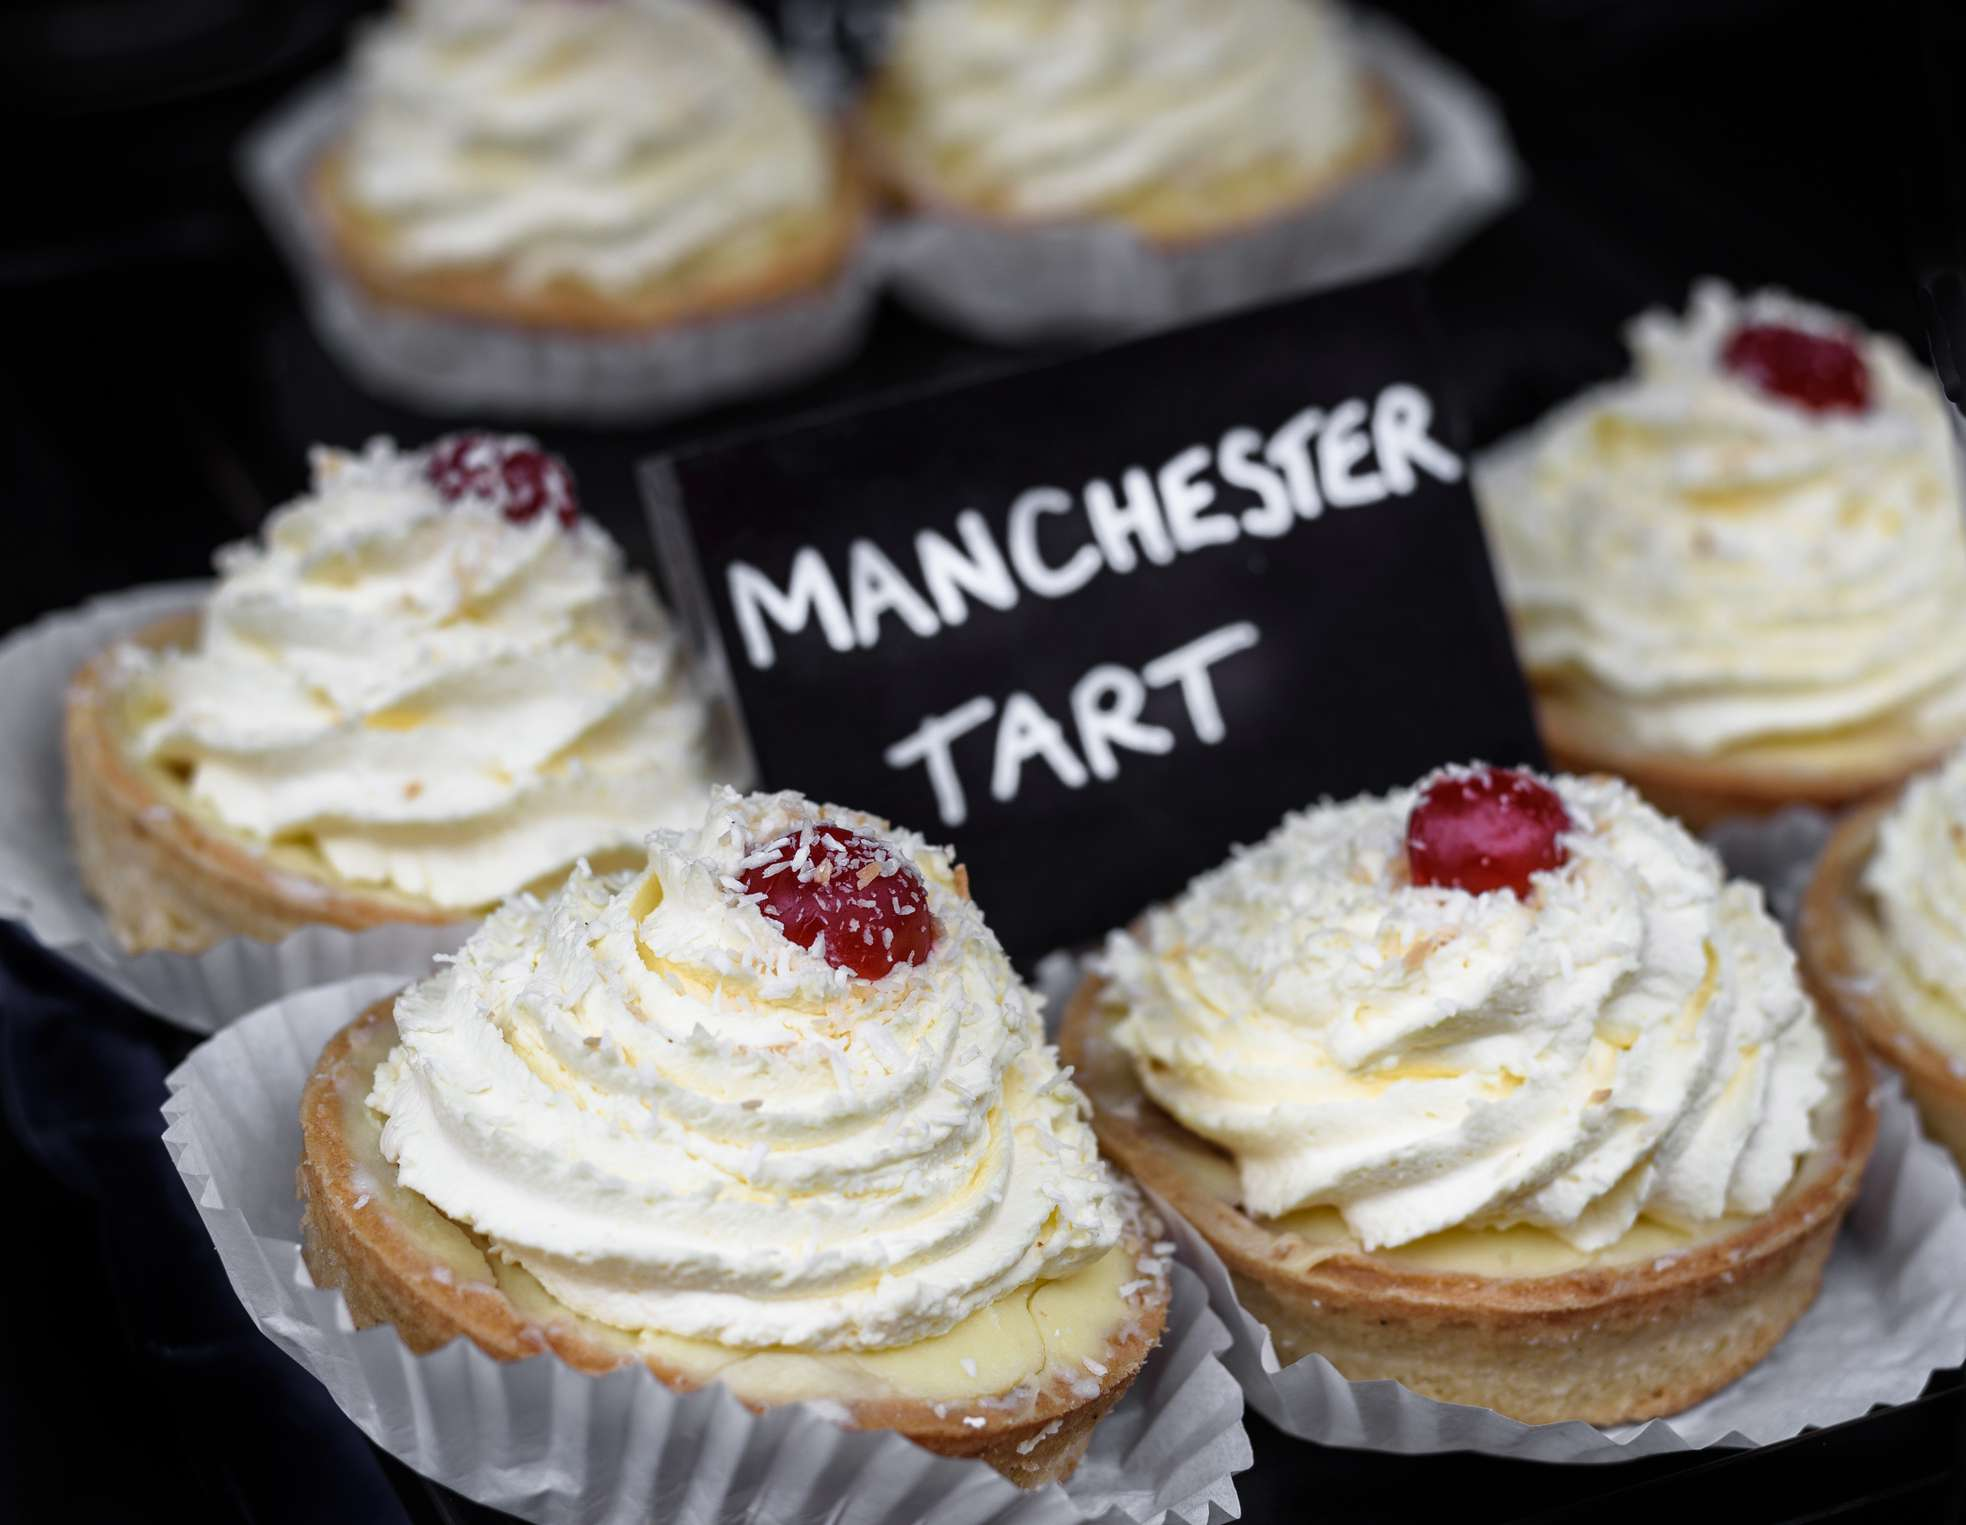 Traditional Manchester tarts for sale with a sign